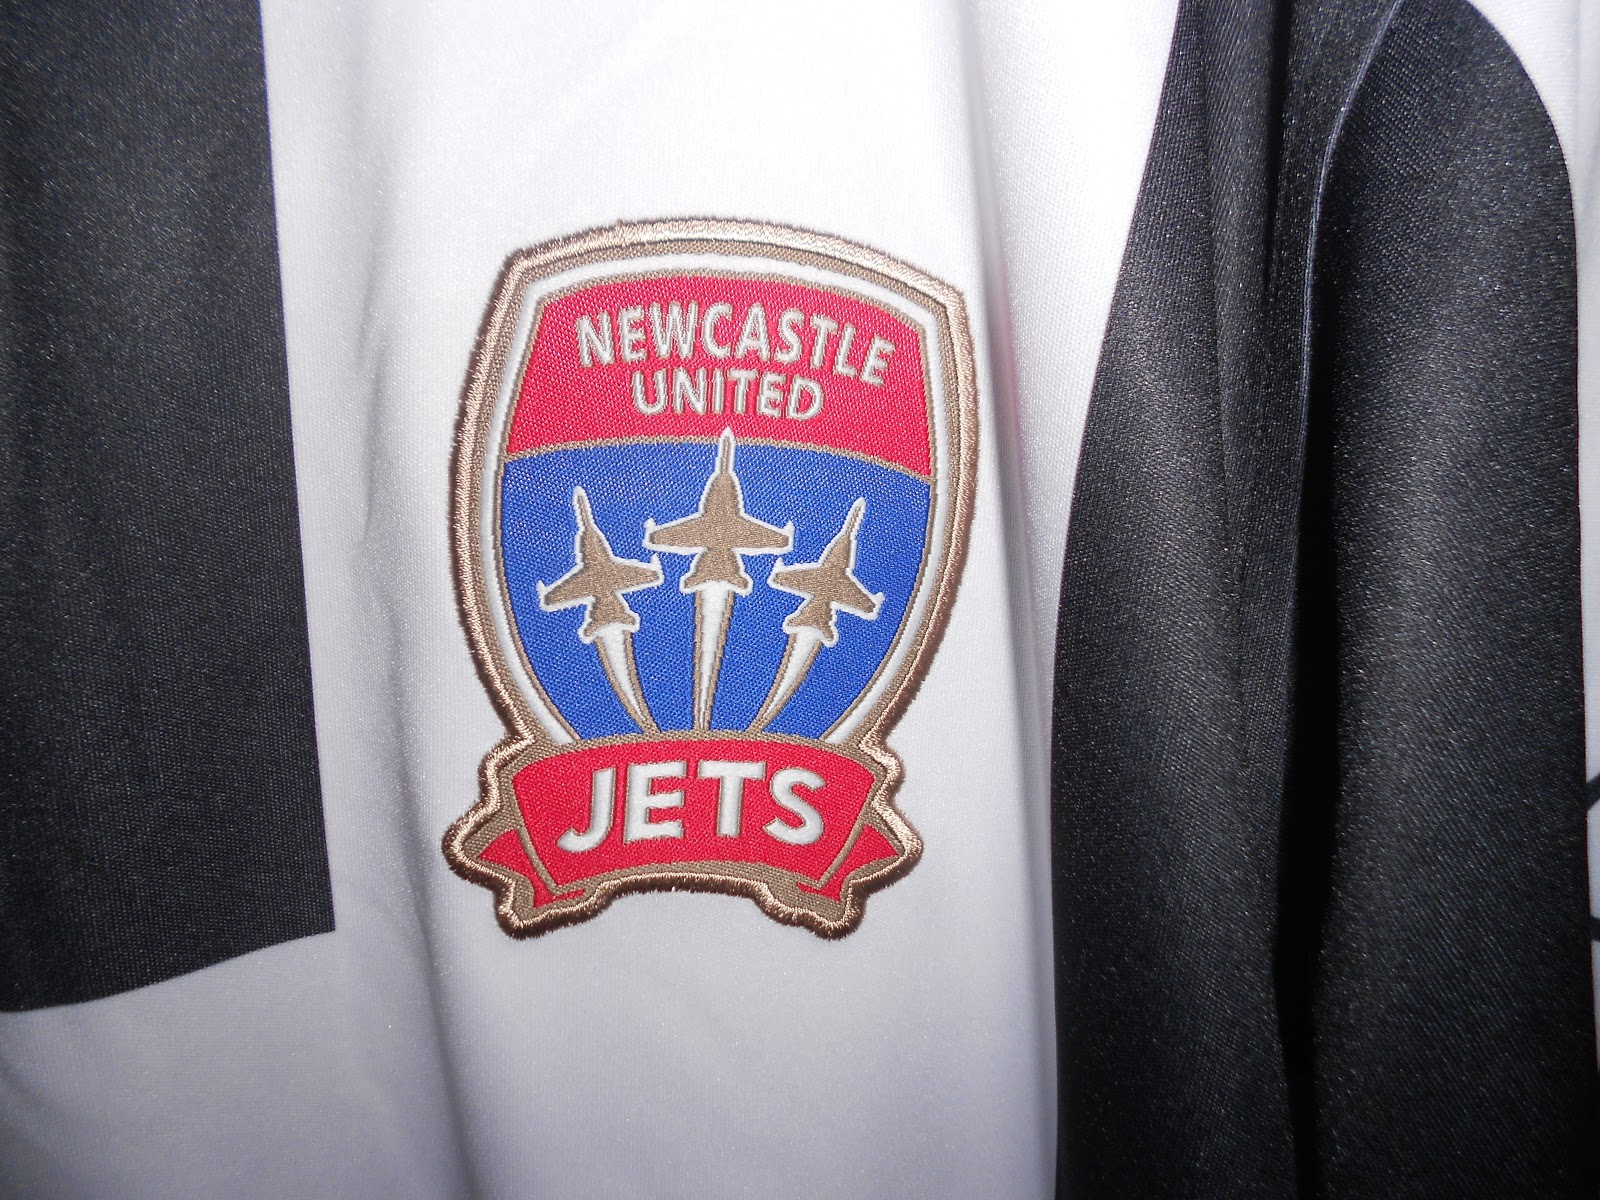 Newcastle Jets: My Collection Of Football Shirts: Newcastle Jets Away 2012